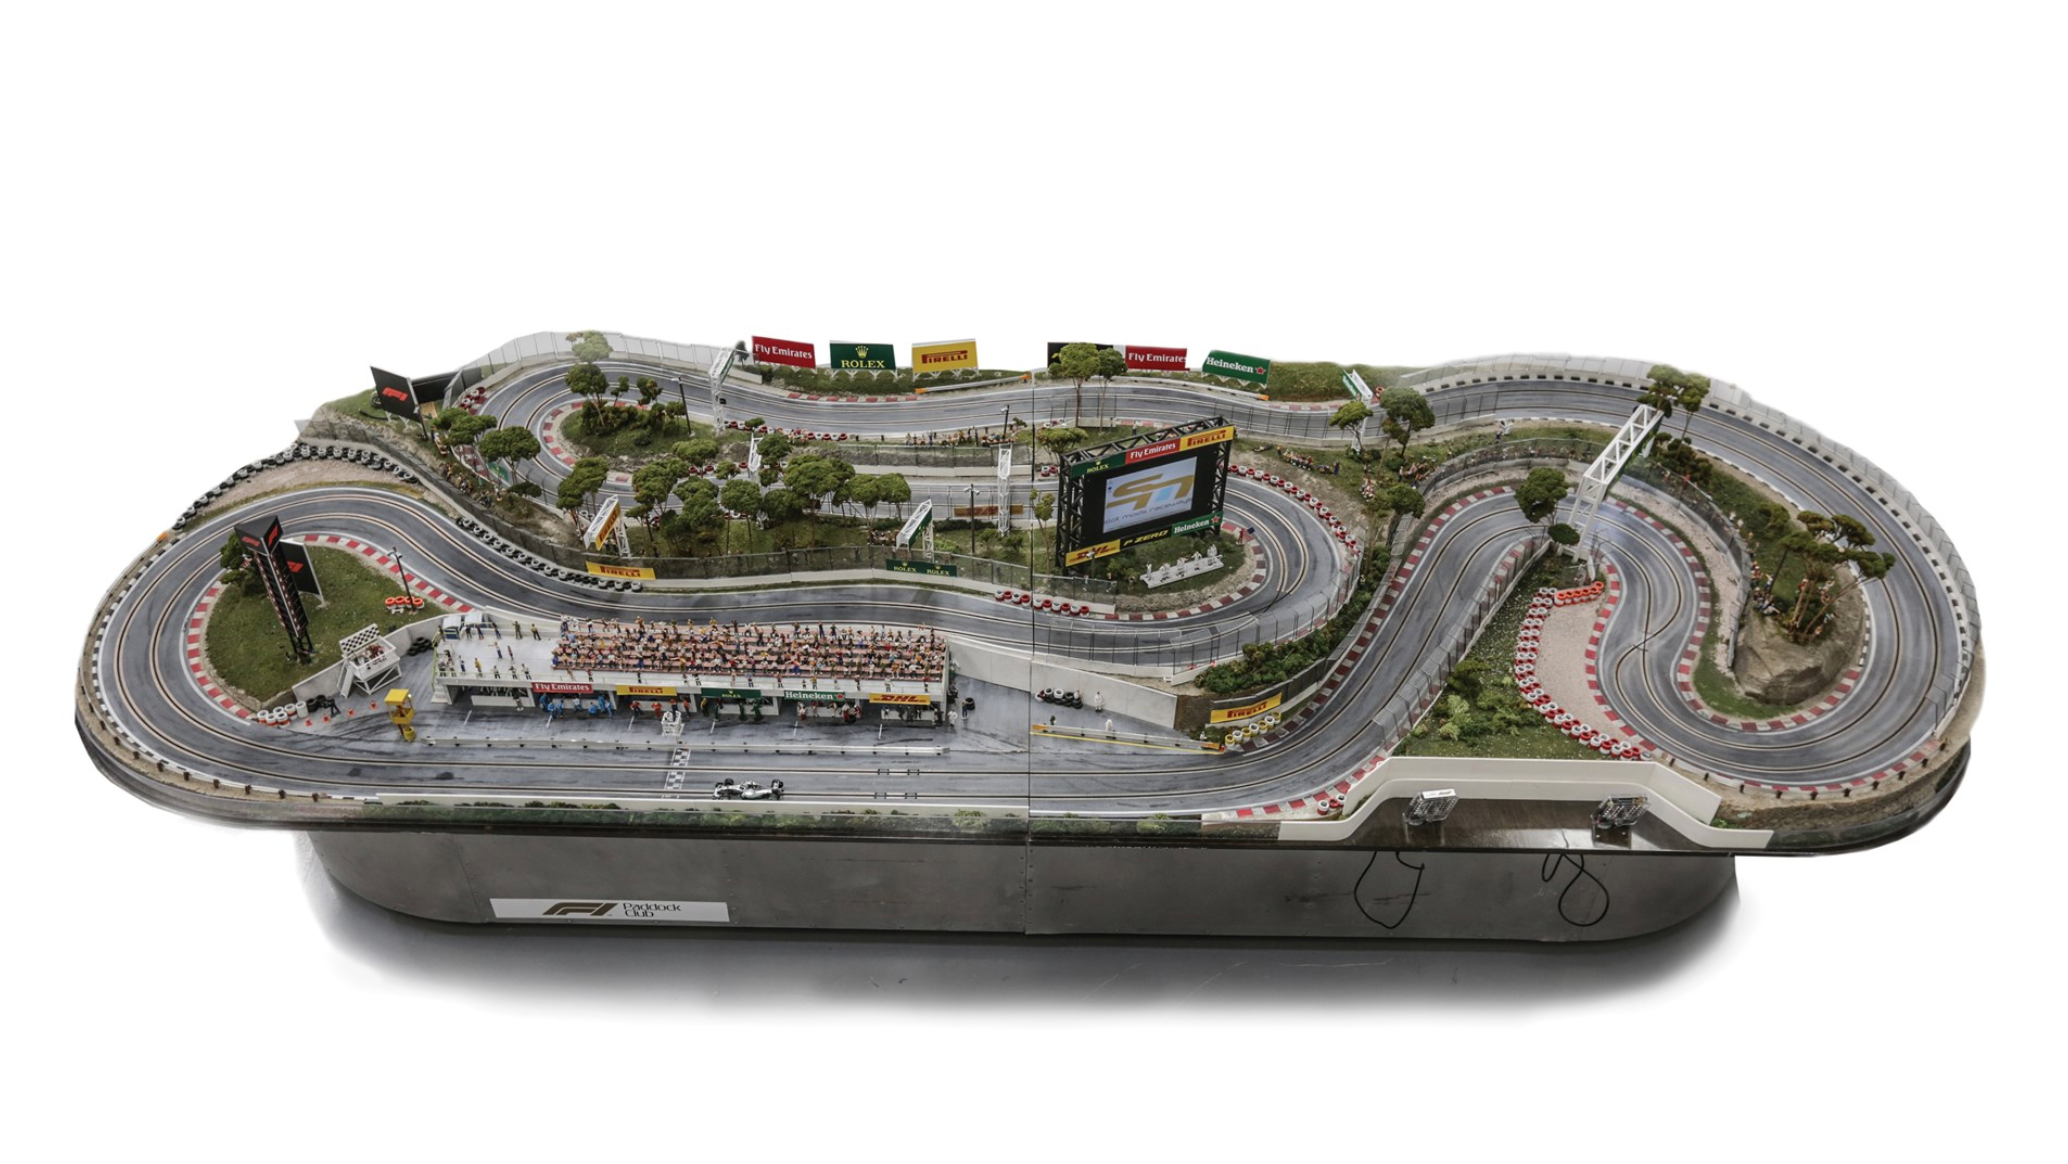 If Money Can't Buy Happiness, Why Does This $30,000 Slot Car Track Exist?